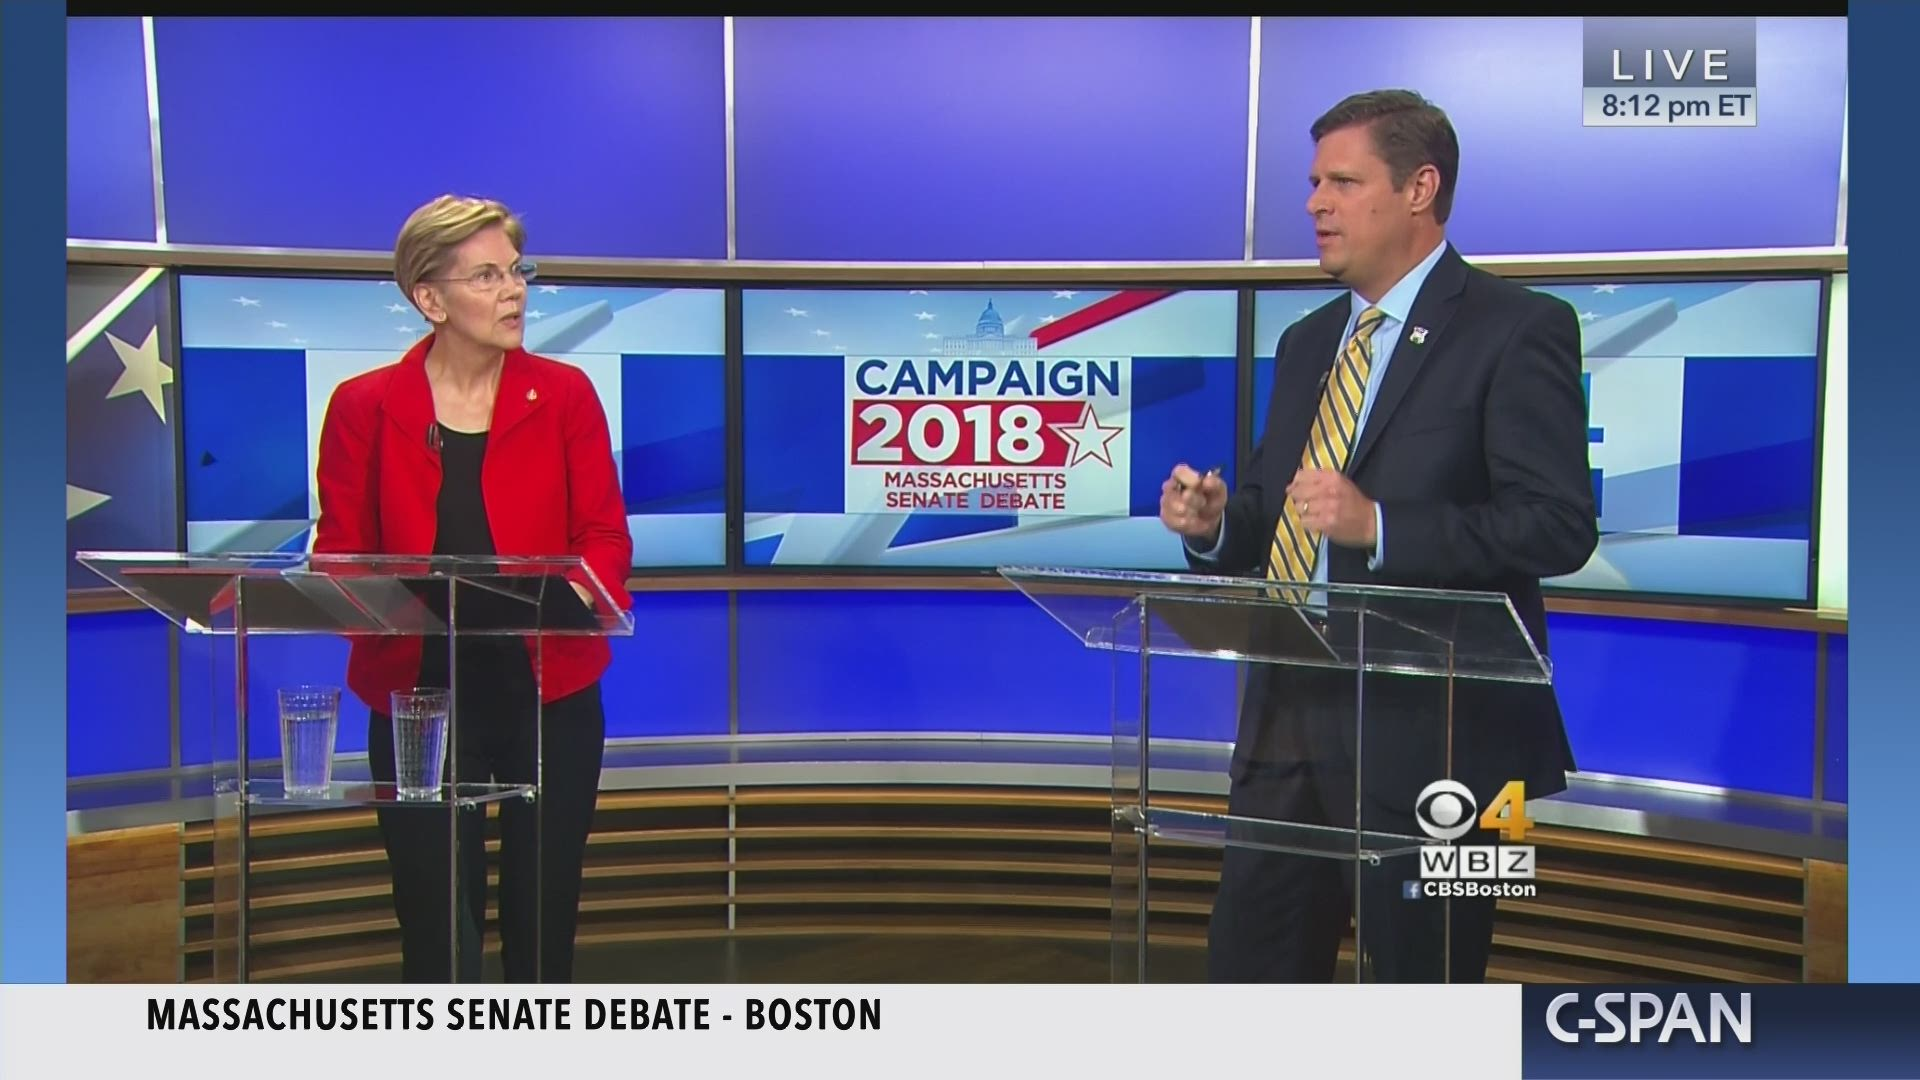 Massachusetts Senate Debate